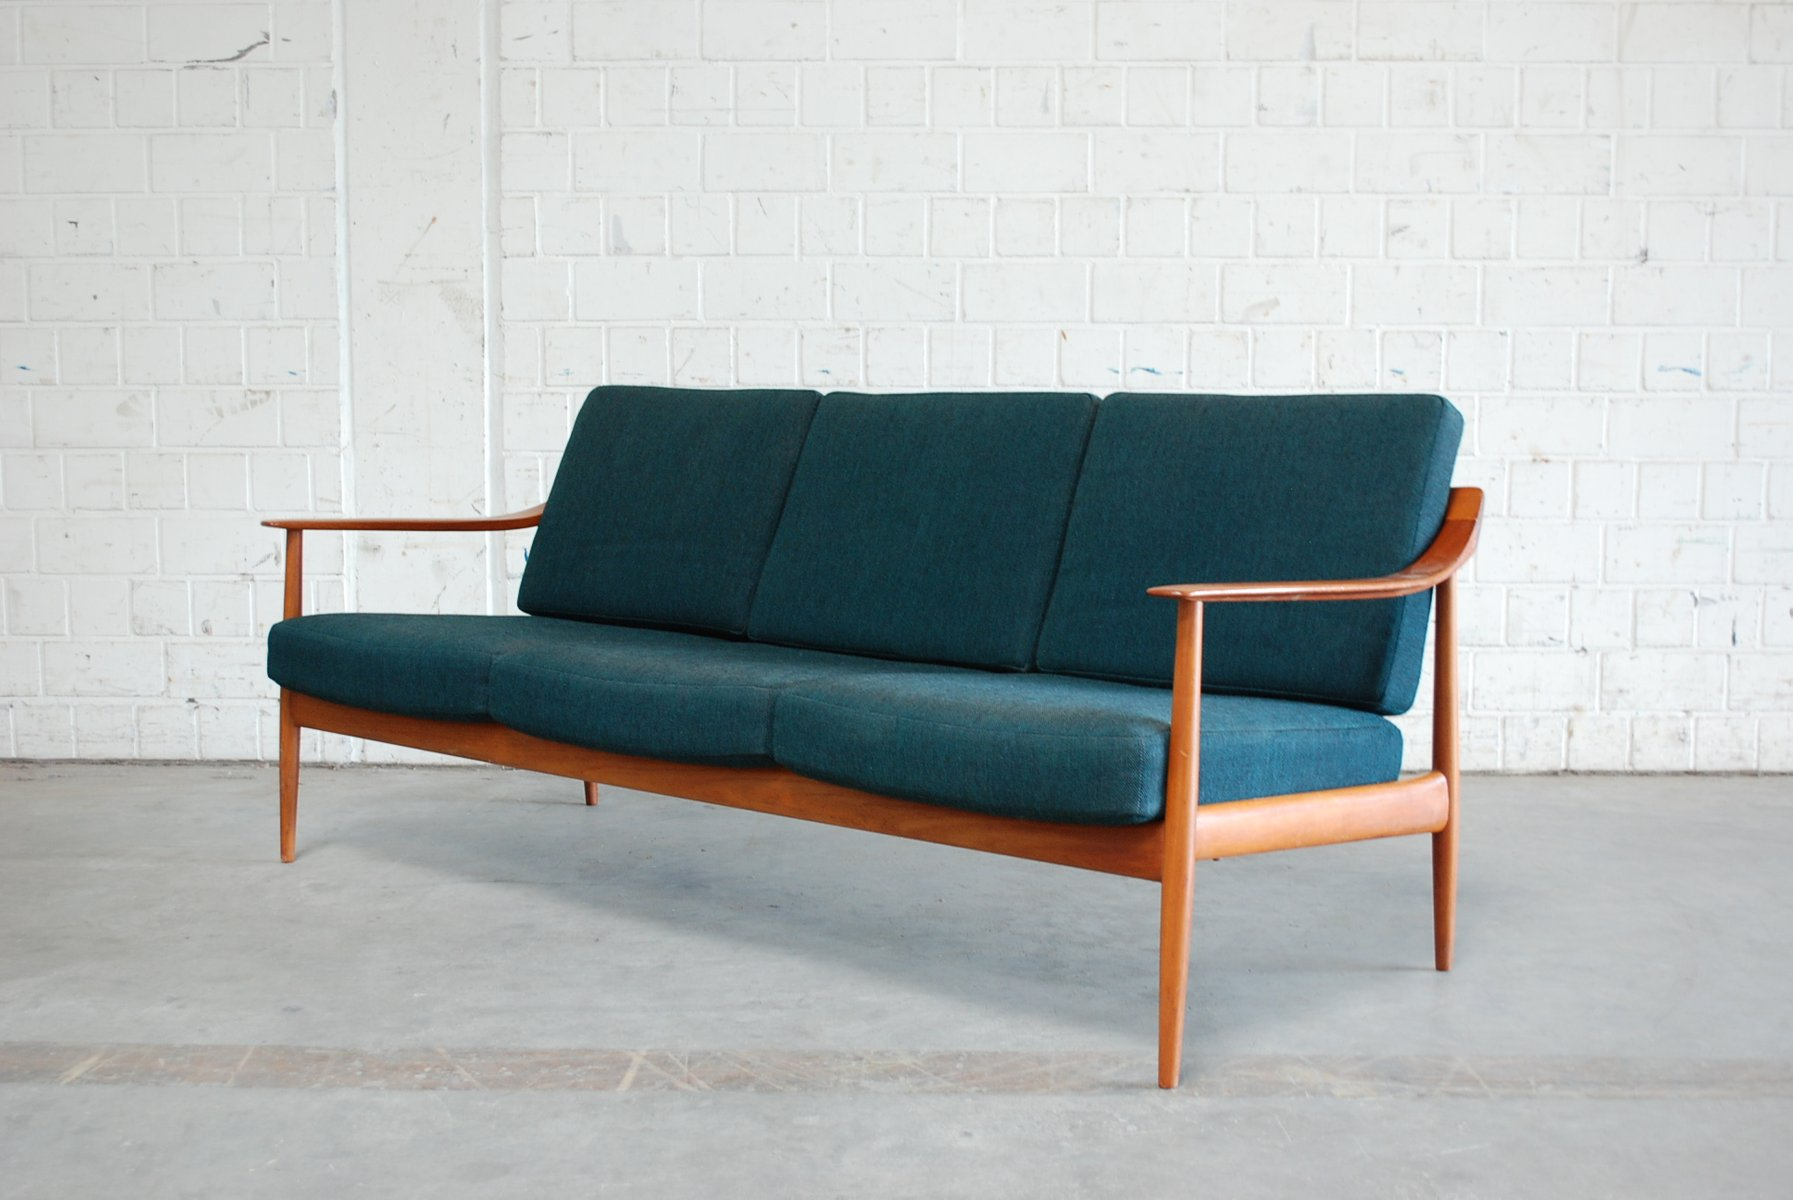 petrol teak sofa from knoll 1960s for sale at pamono. Black Bedroom Furniture Sets. Home Design Ideas